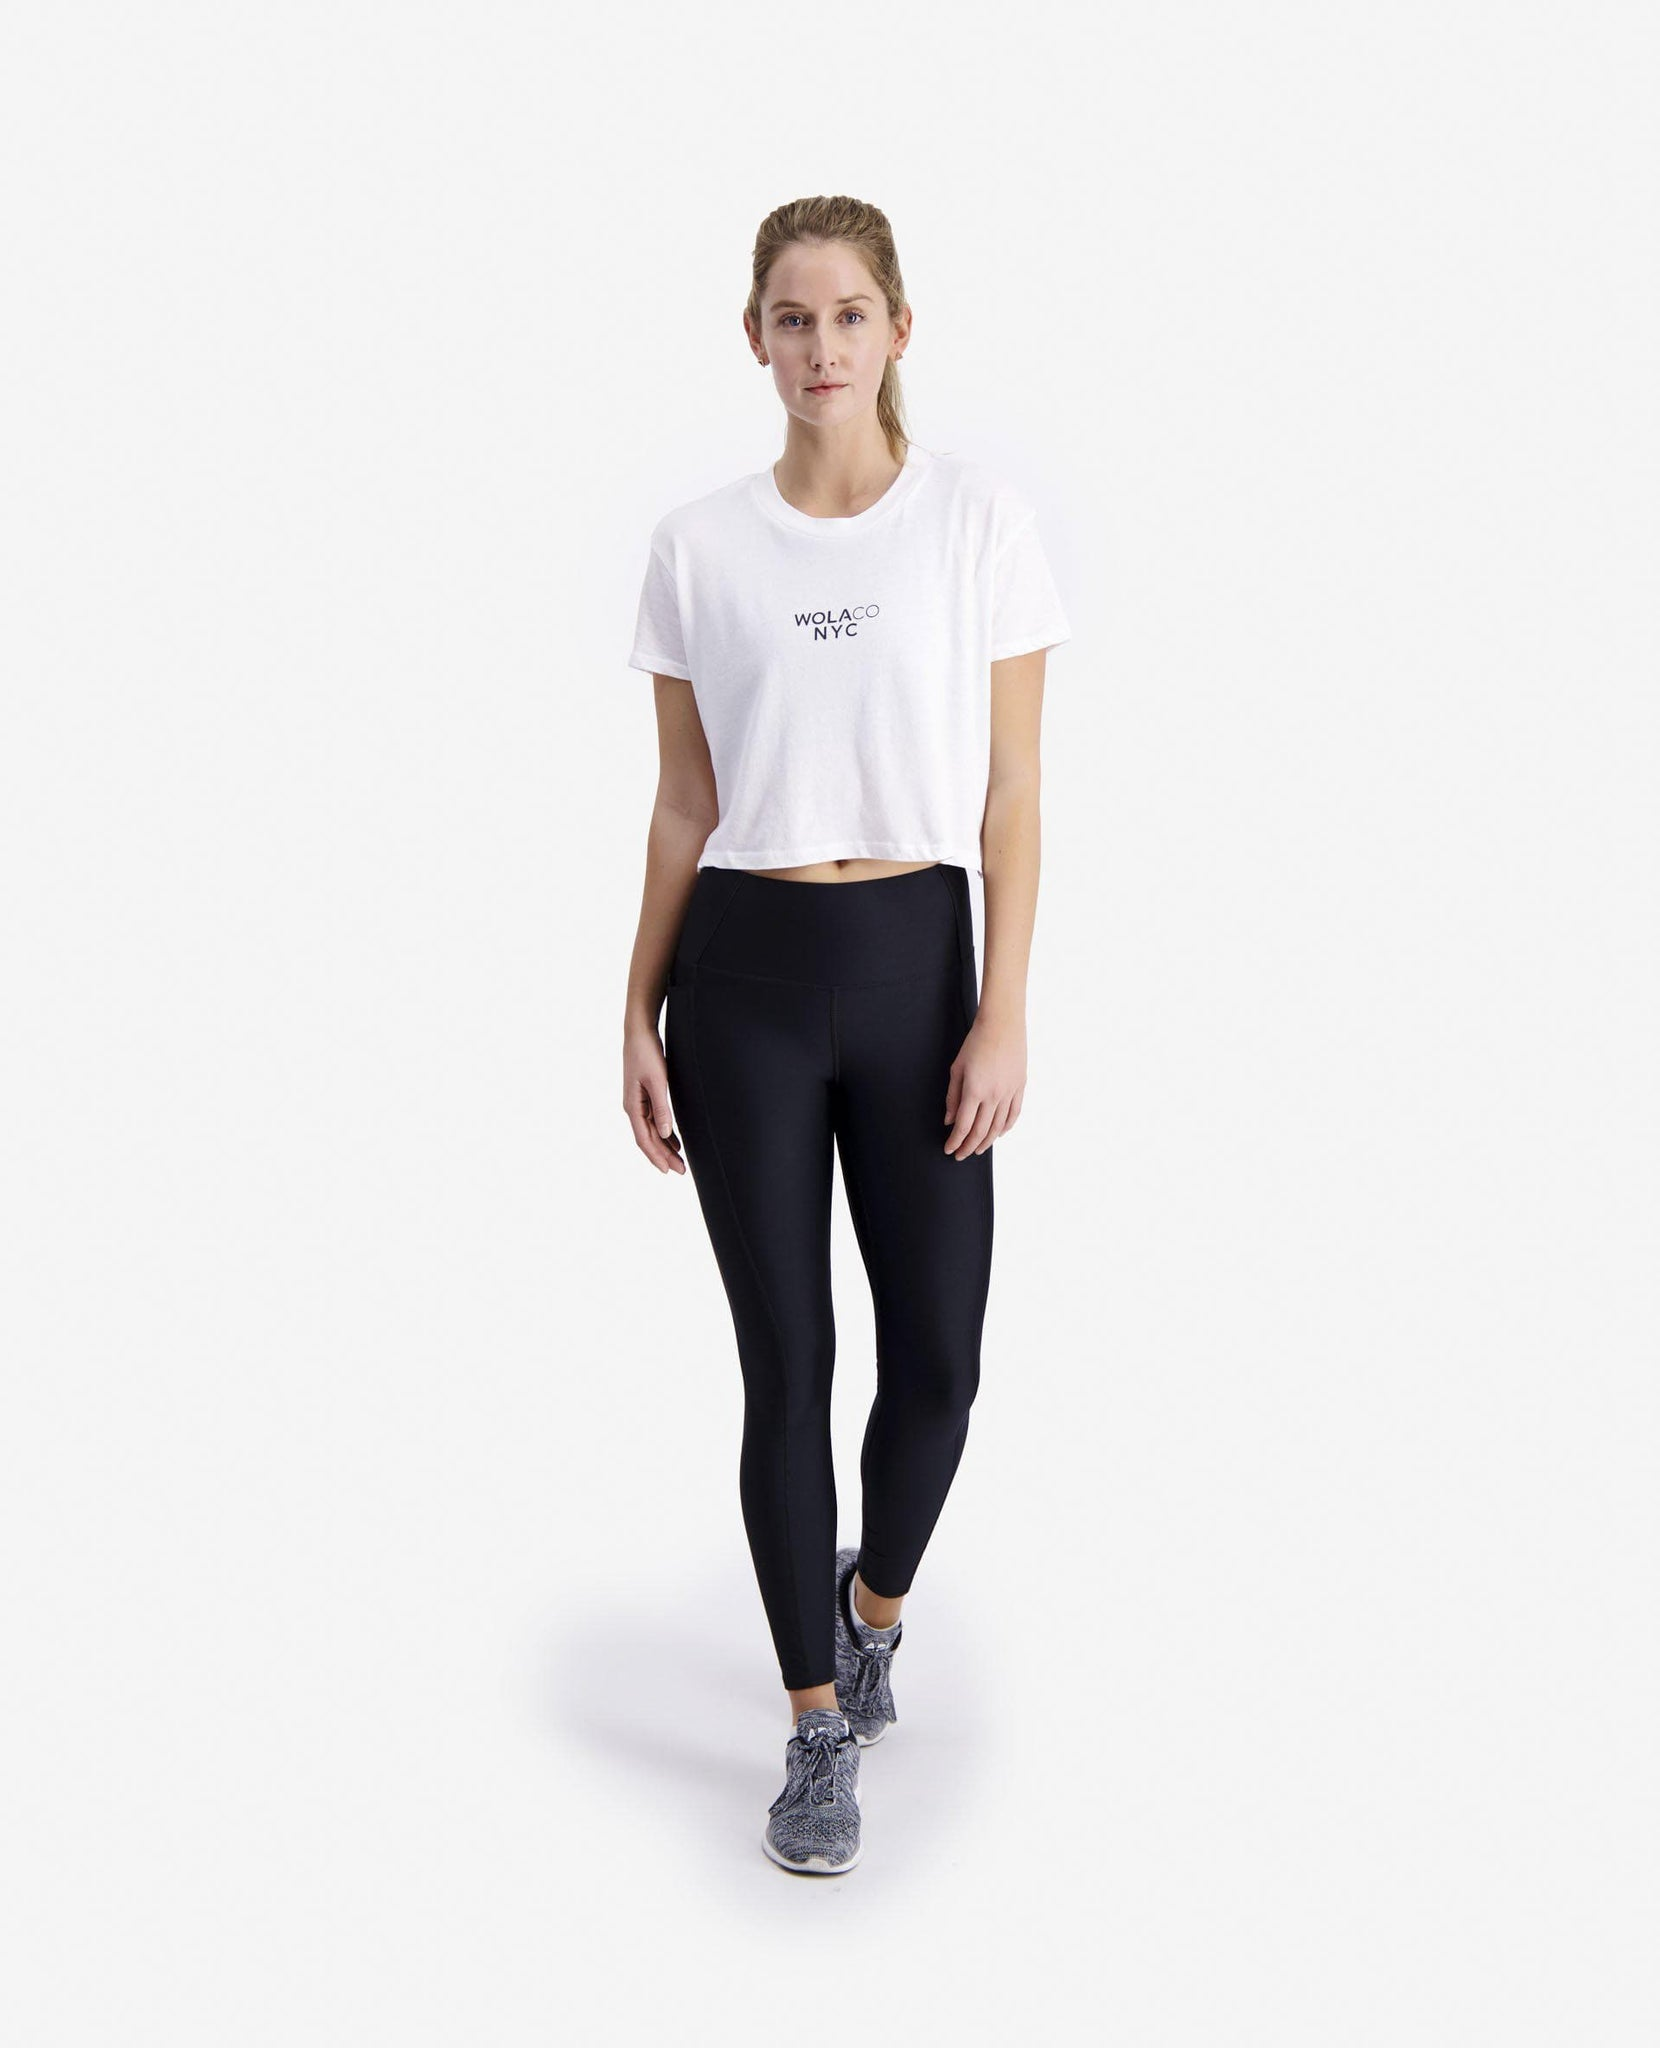 WOMEN NEW YORK CITY CROPPED TEE